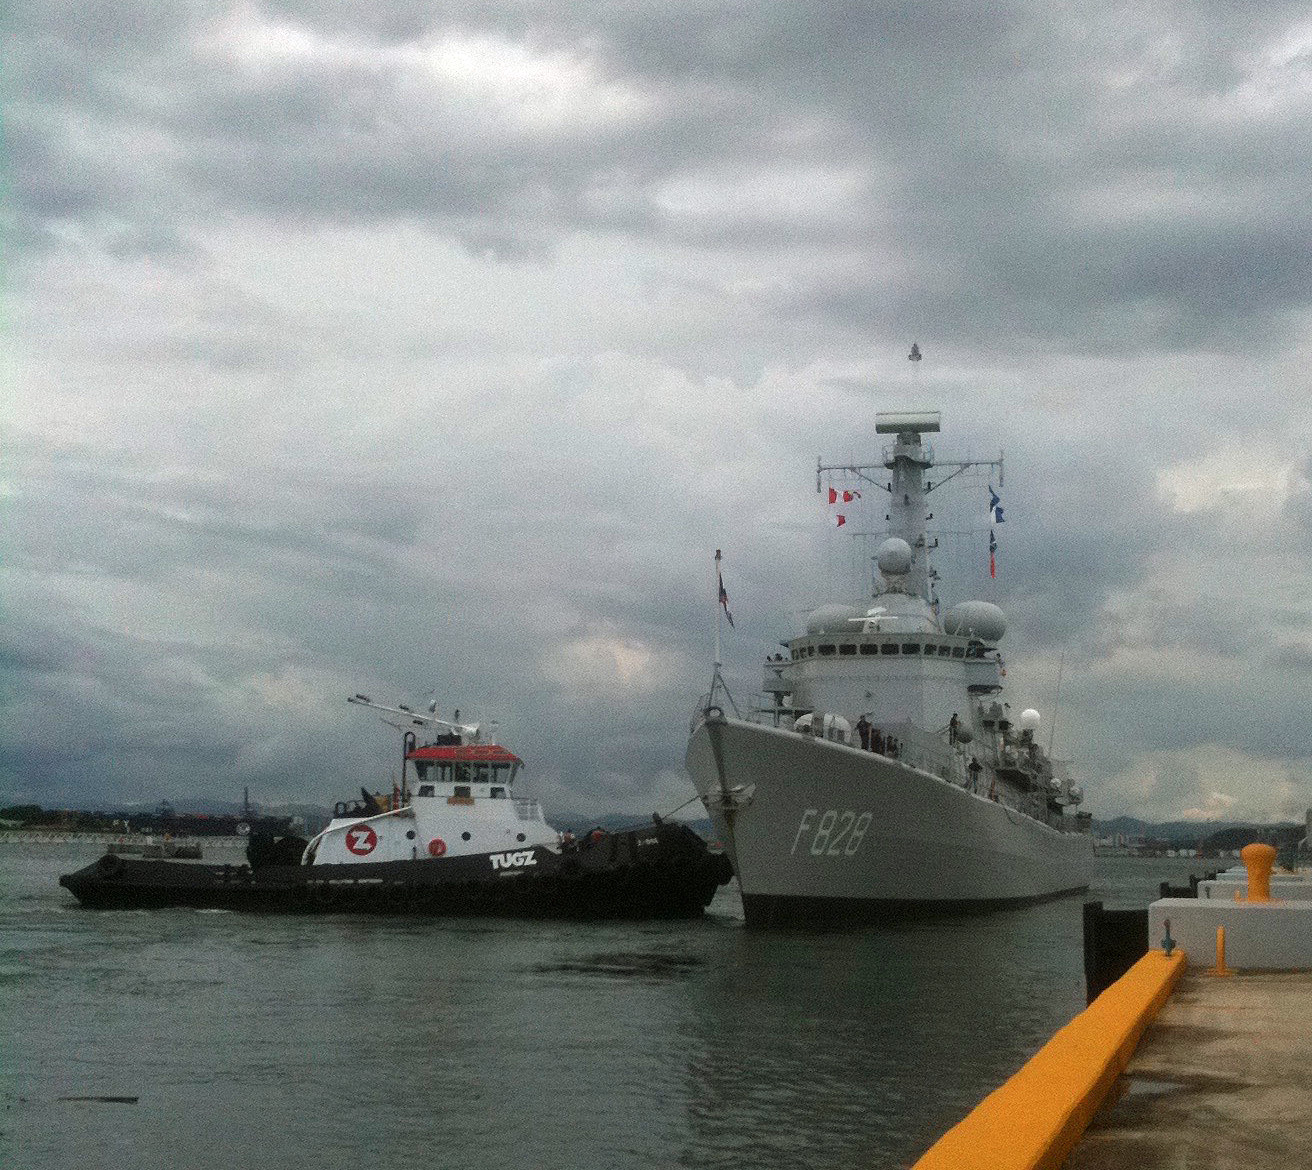 Dutch military vessel coming into San Juan for crew leave. Blue Water Maritime made all arrangements at considerable cost savings.